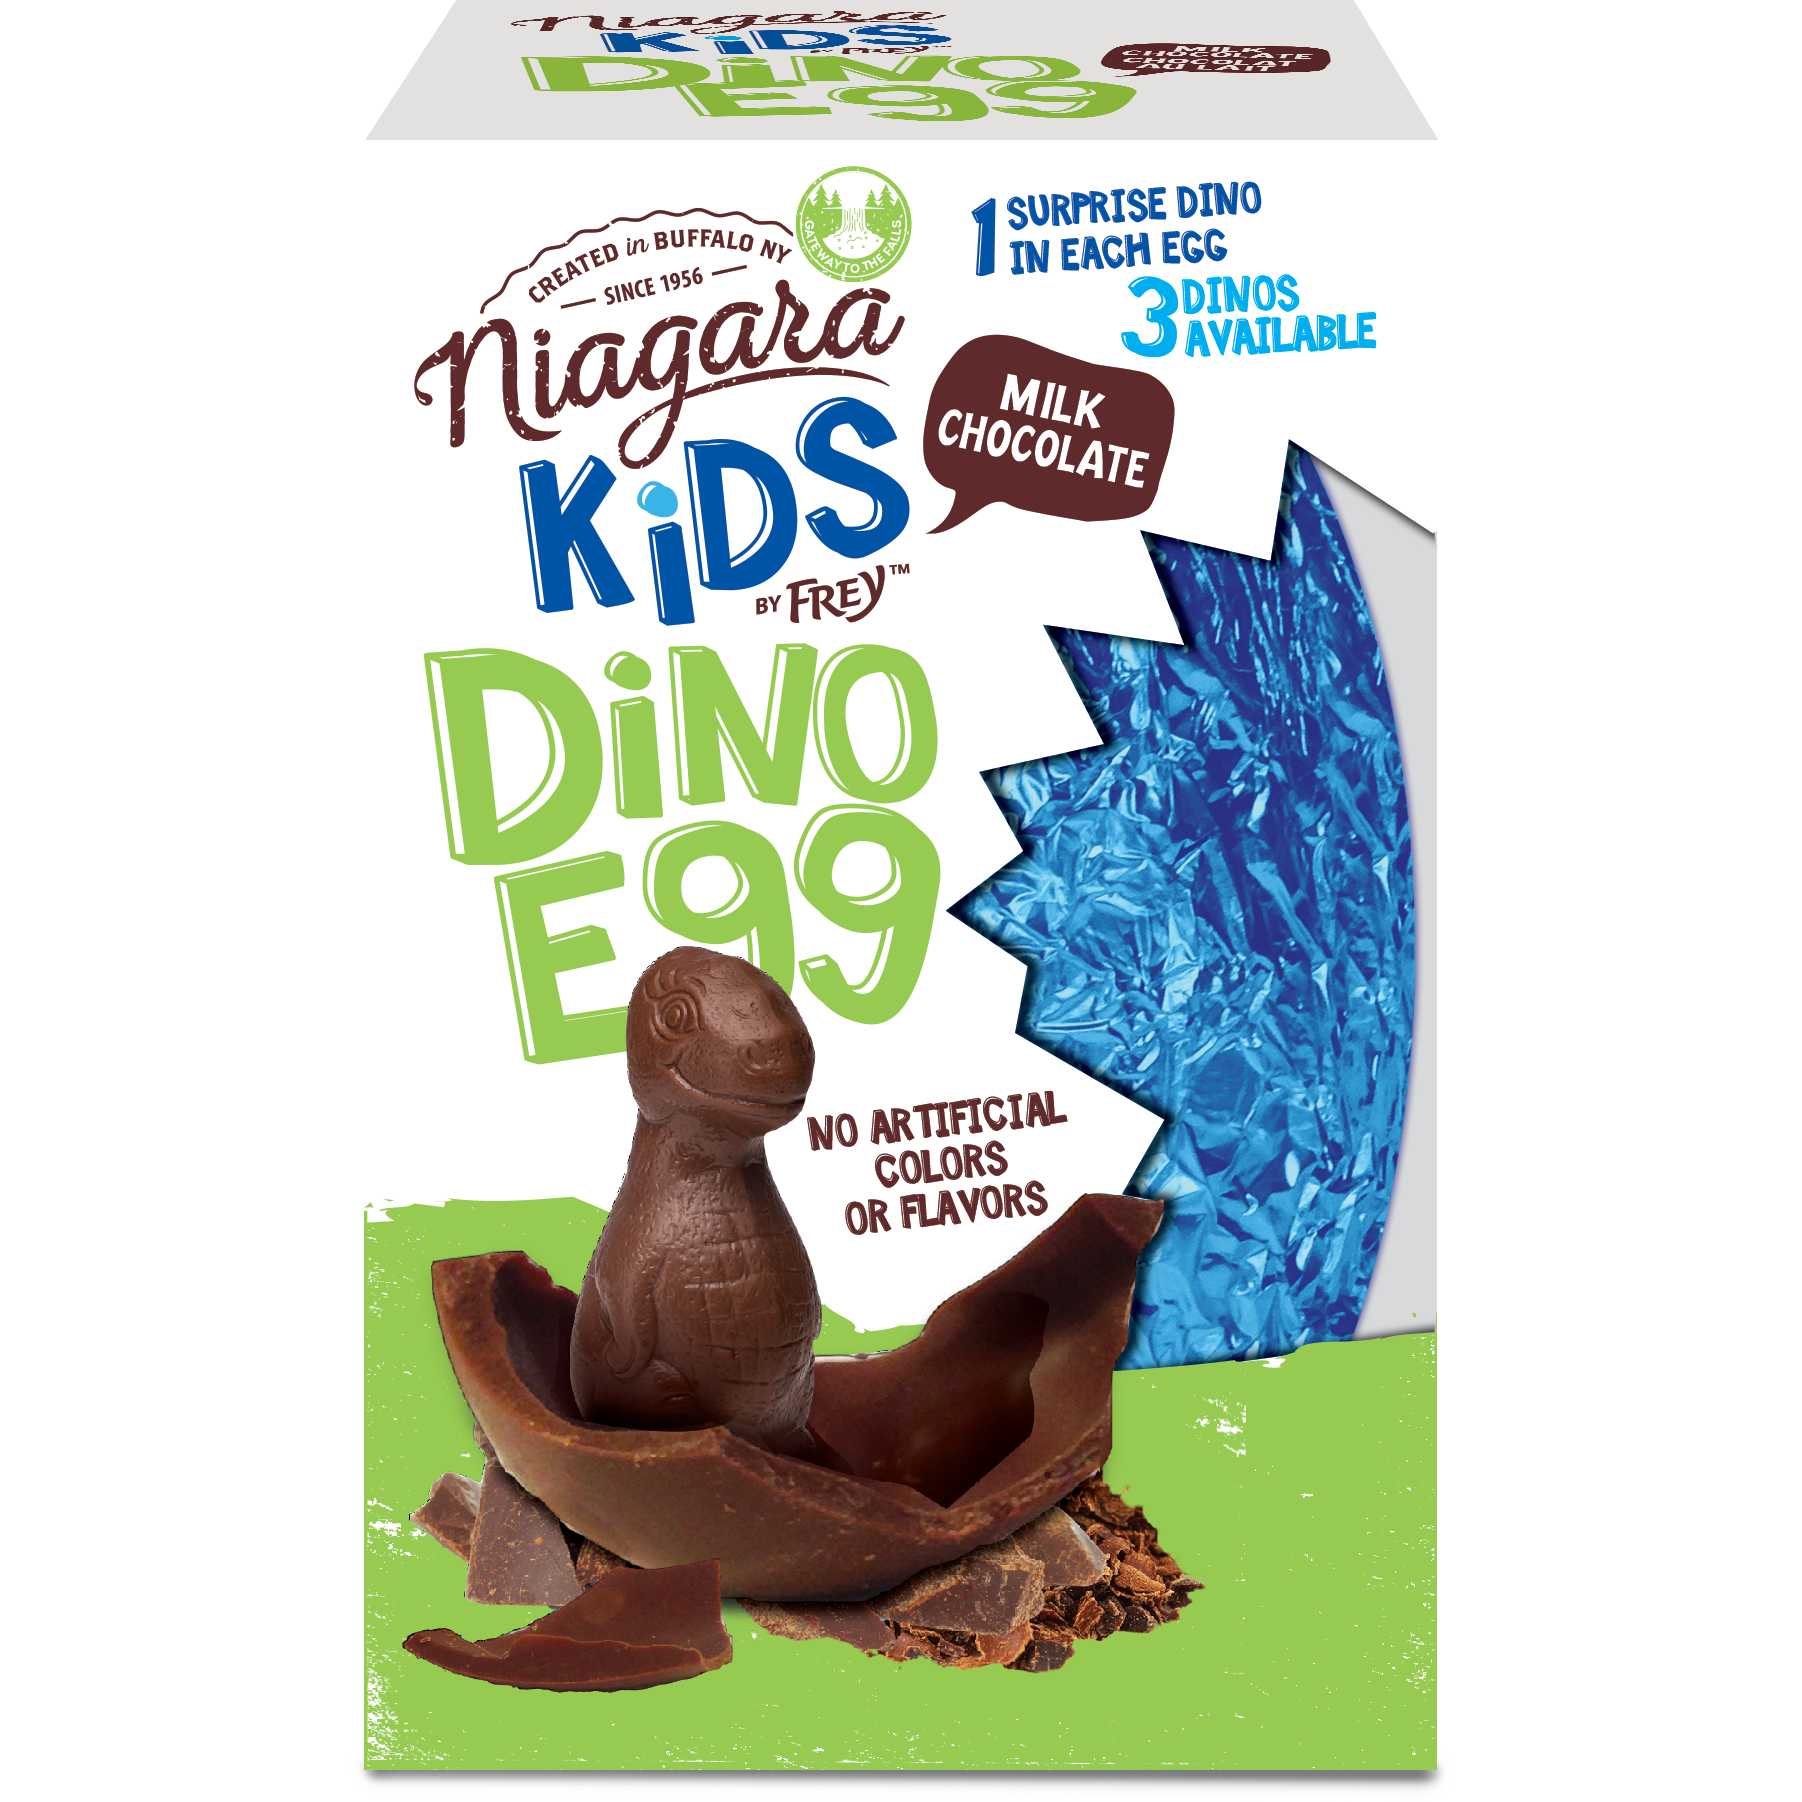 Milk Chocolate Dinosaur Surprise Egg - Niagara by Frey, Premium Chocolate